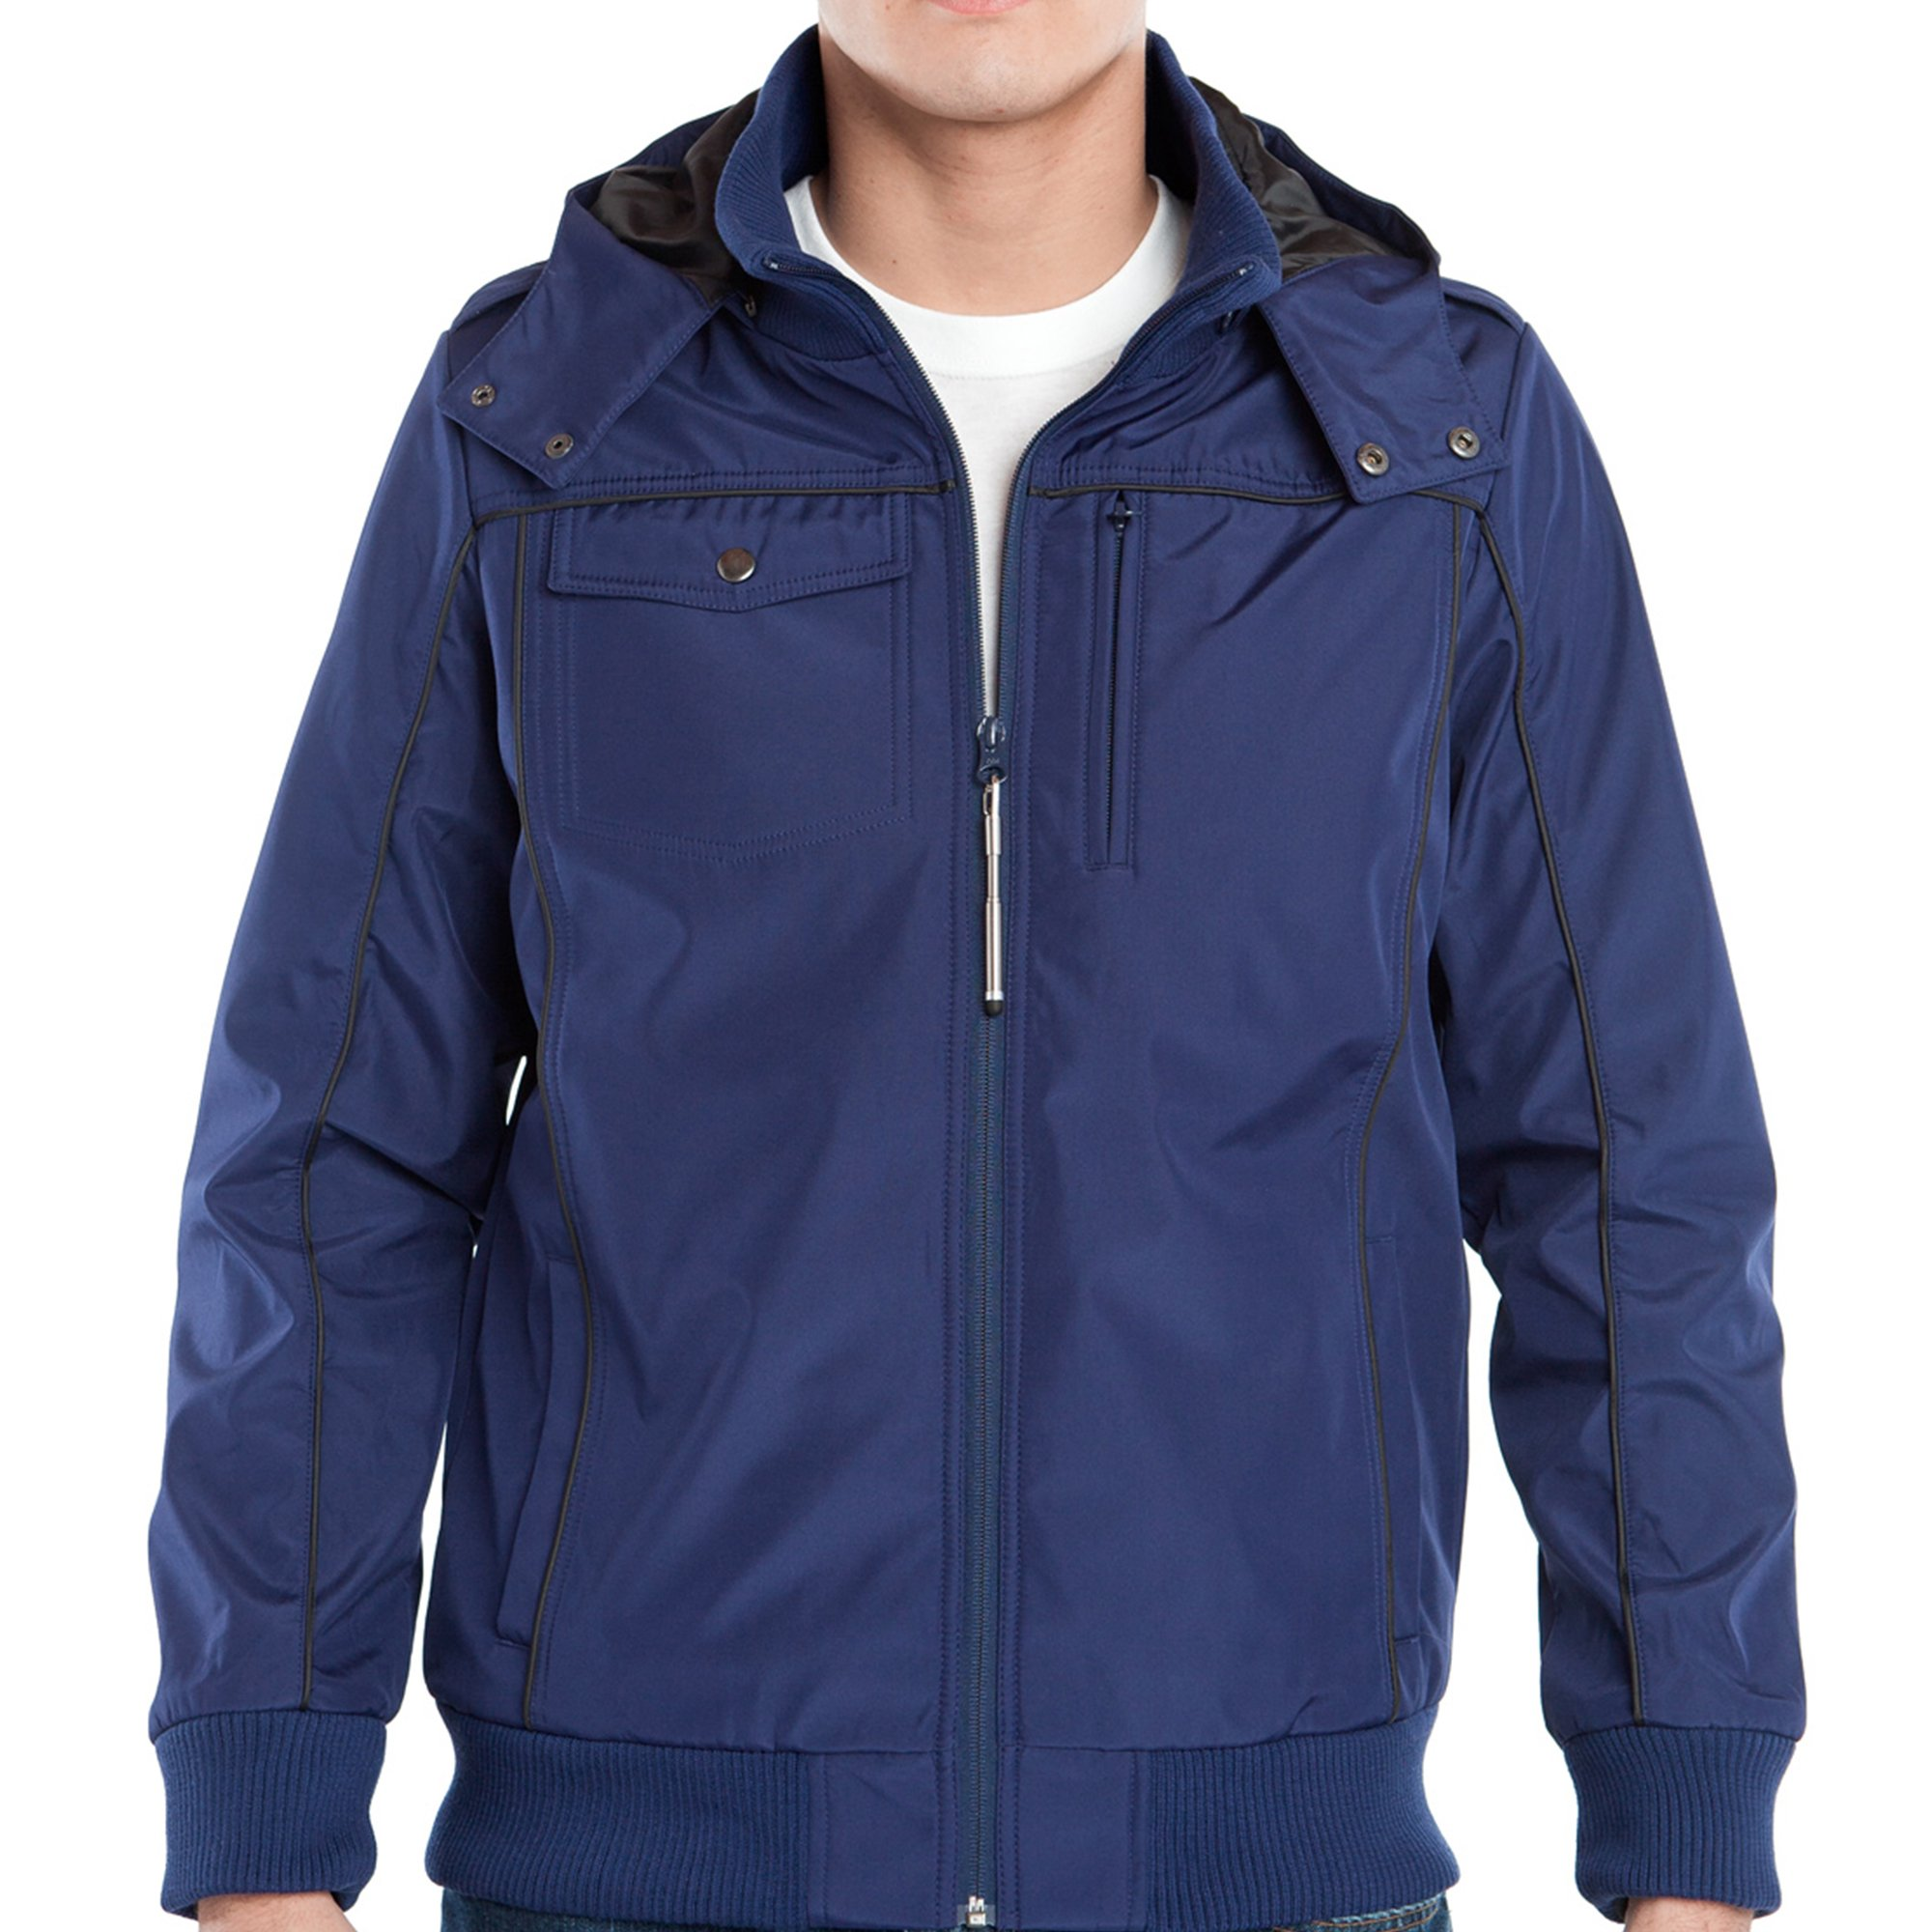 Baubax Men's Bomber Travel Jacket, Blue, Large by Baubax